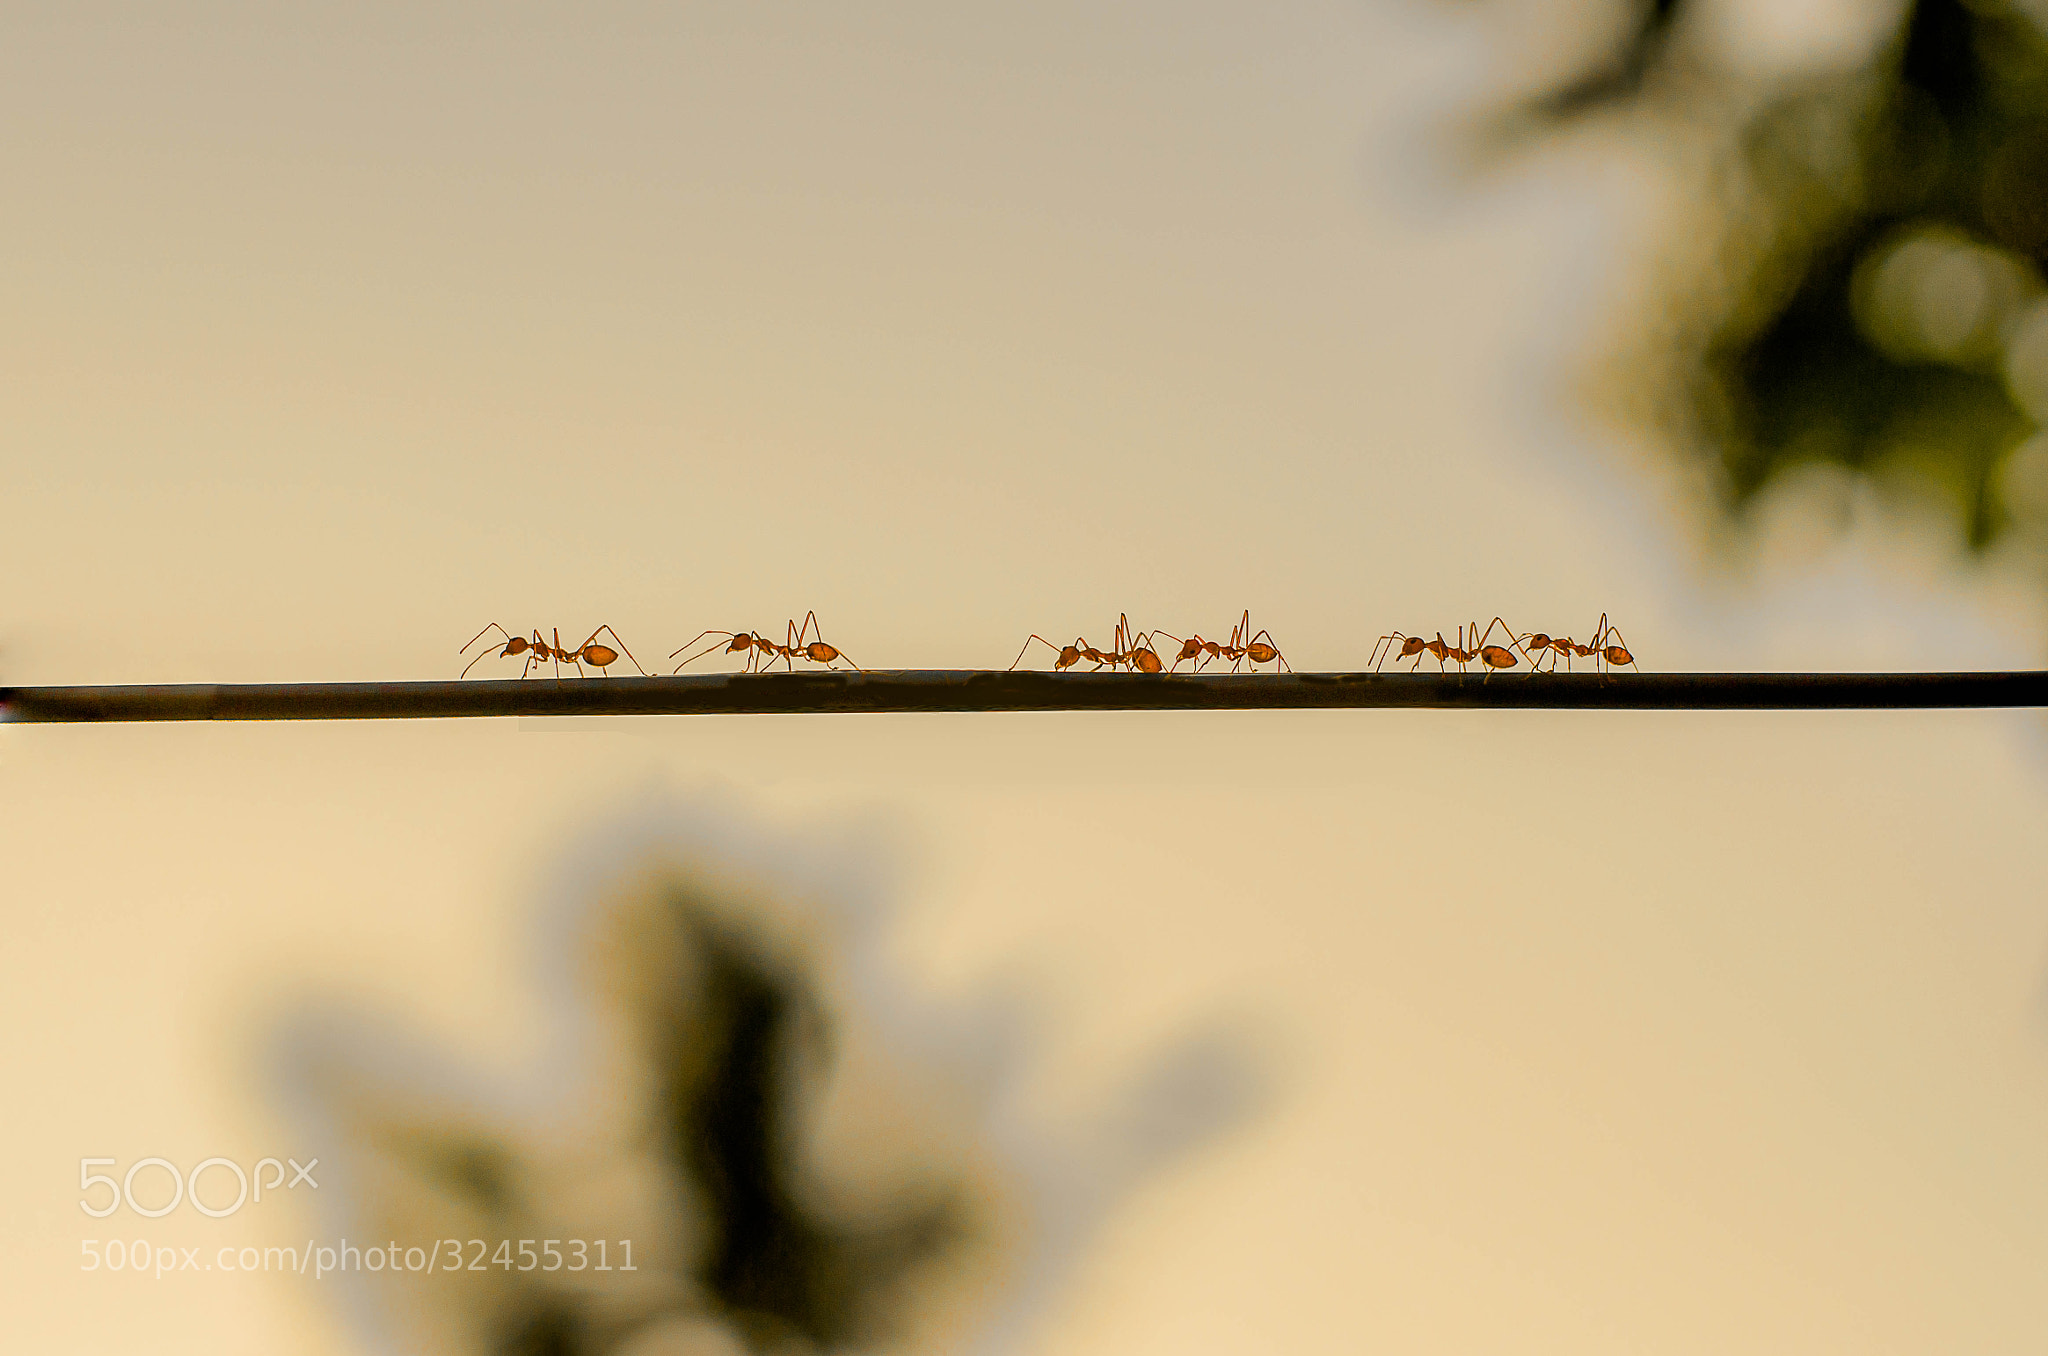 Photograph Ants marching by Badaru Din on 500px